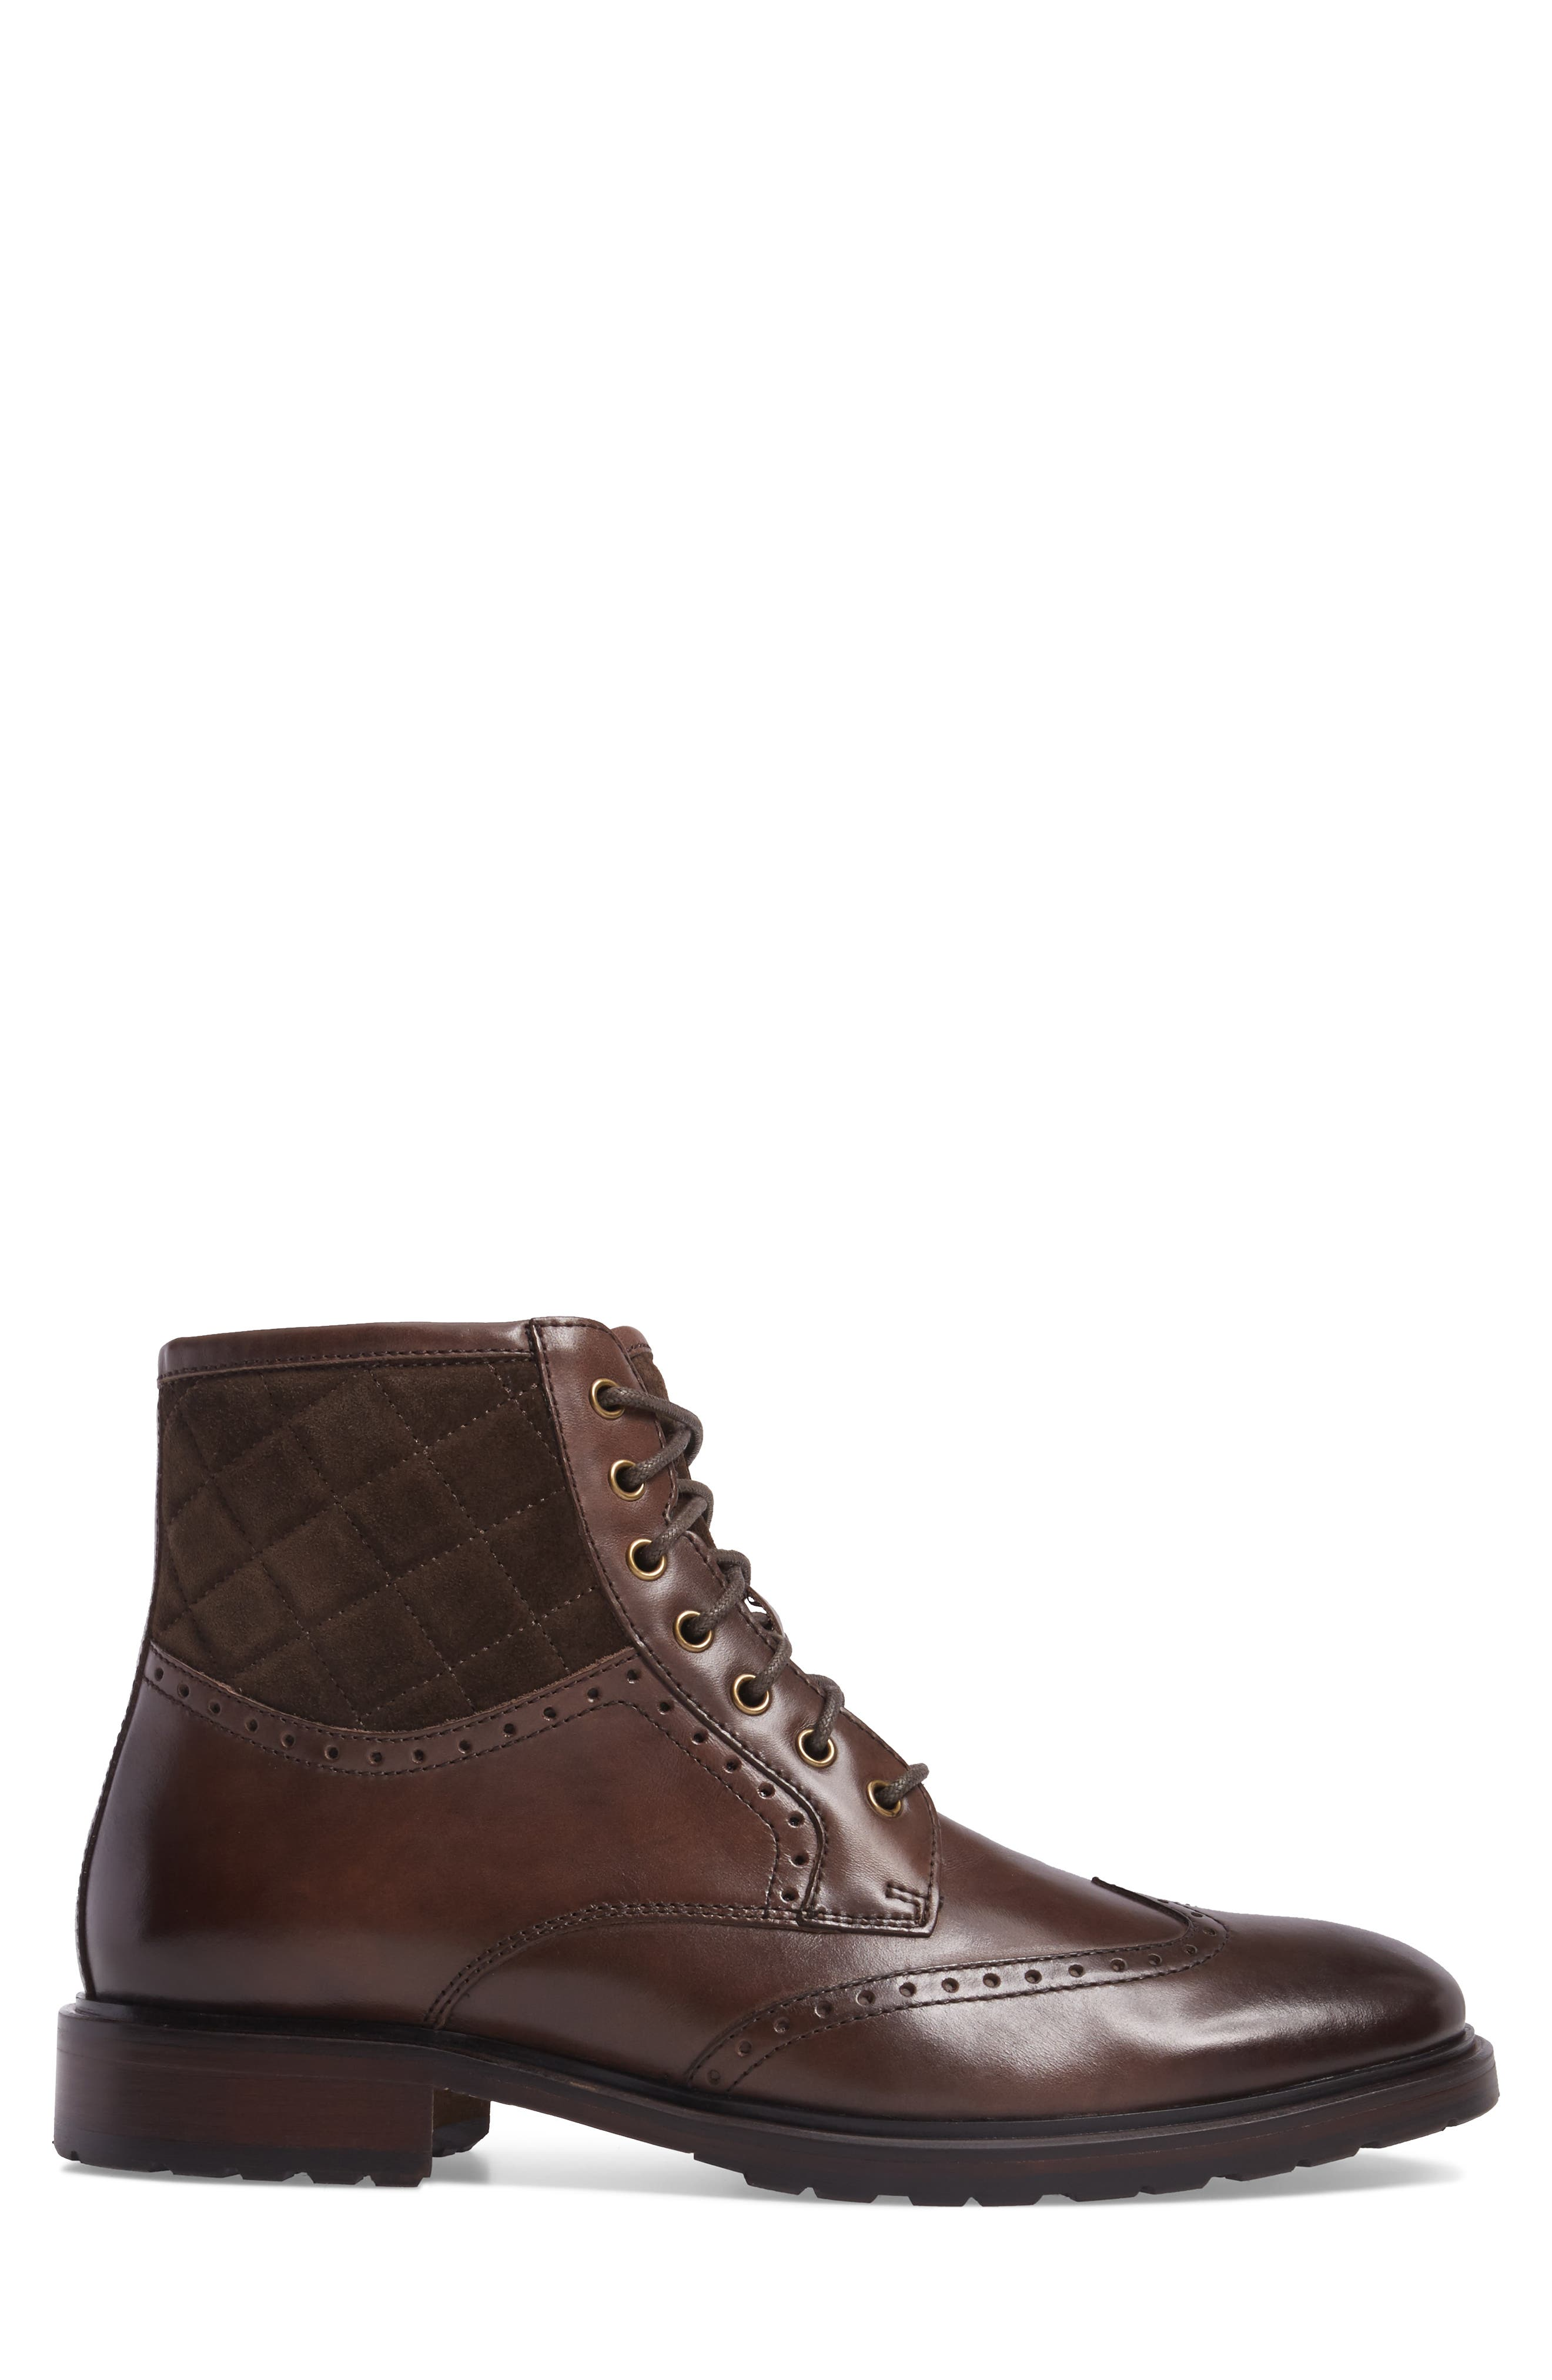 Myles Wingtip Boot,                             Alternate thumbnail 3, color,                             206